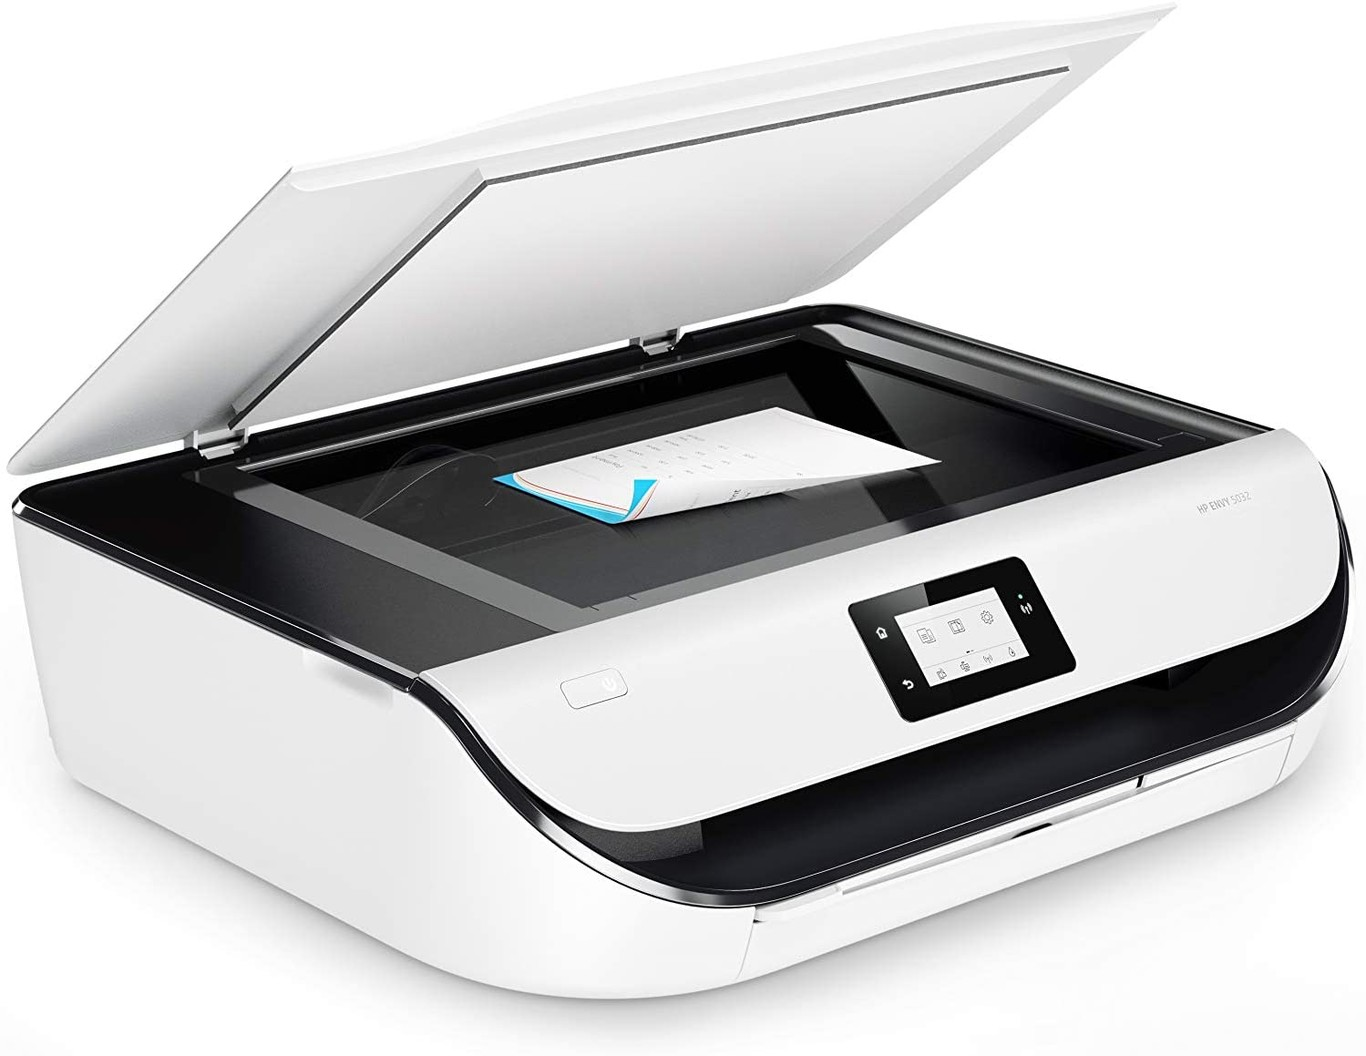 23 Best Printers (2020): Buying Guide With Tips 2